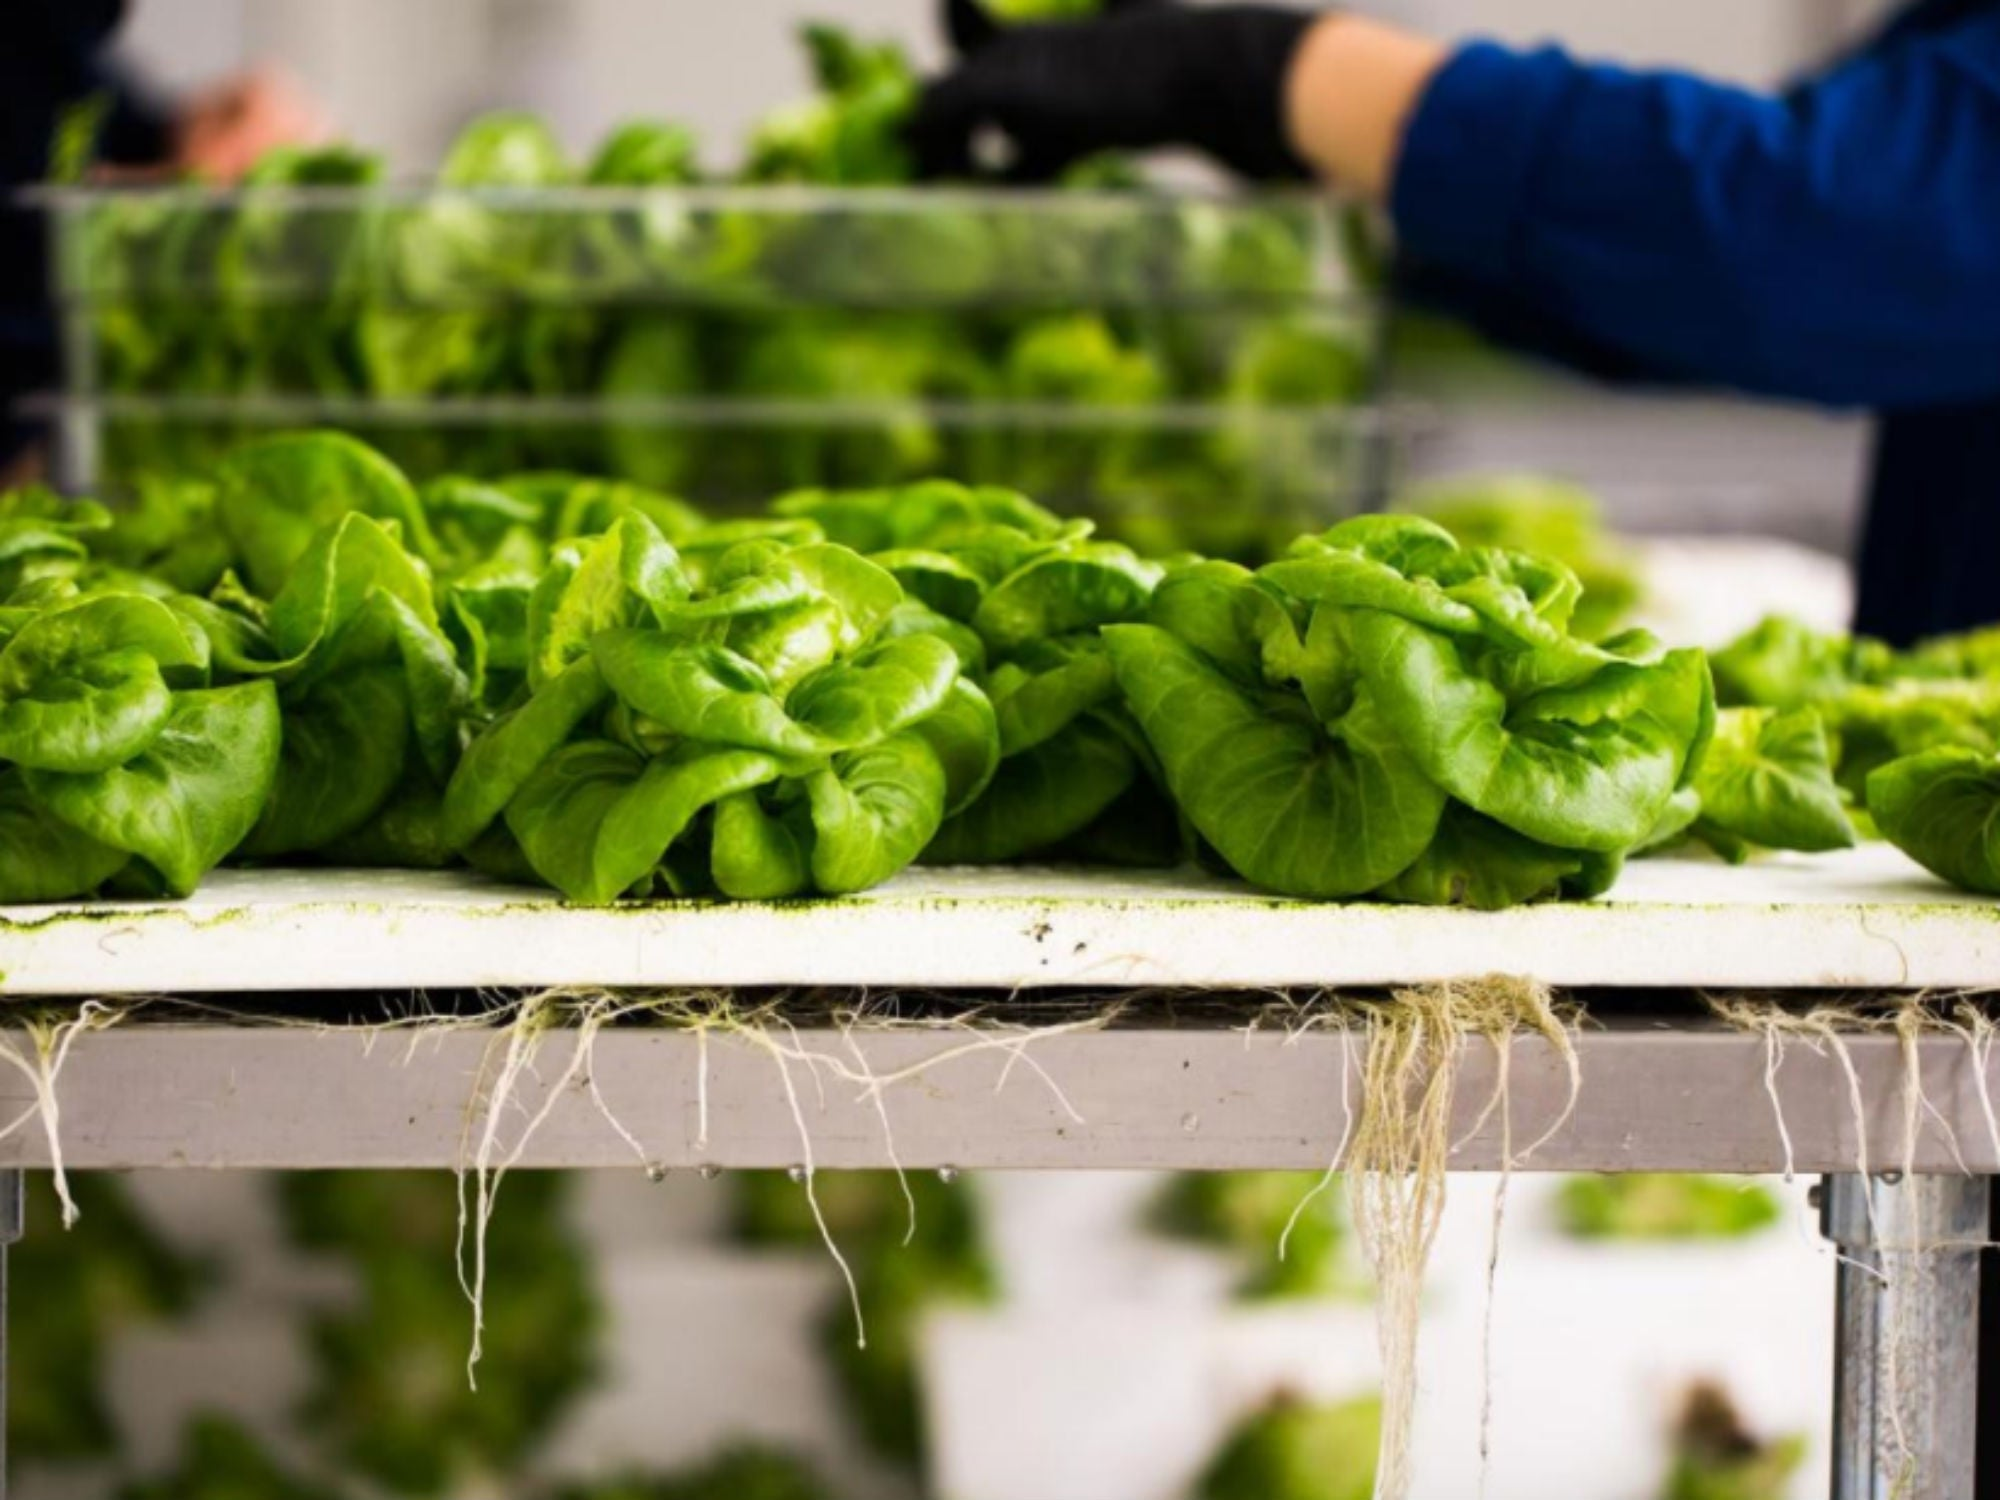 Could Indoor Farming Be the Future of Agriculture?